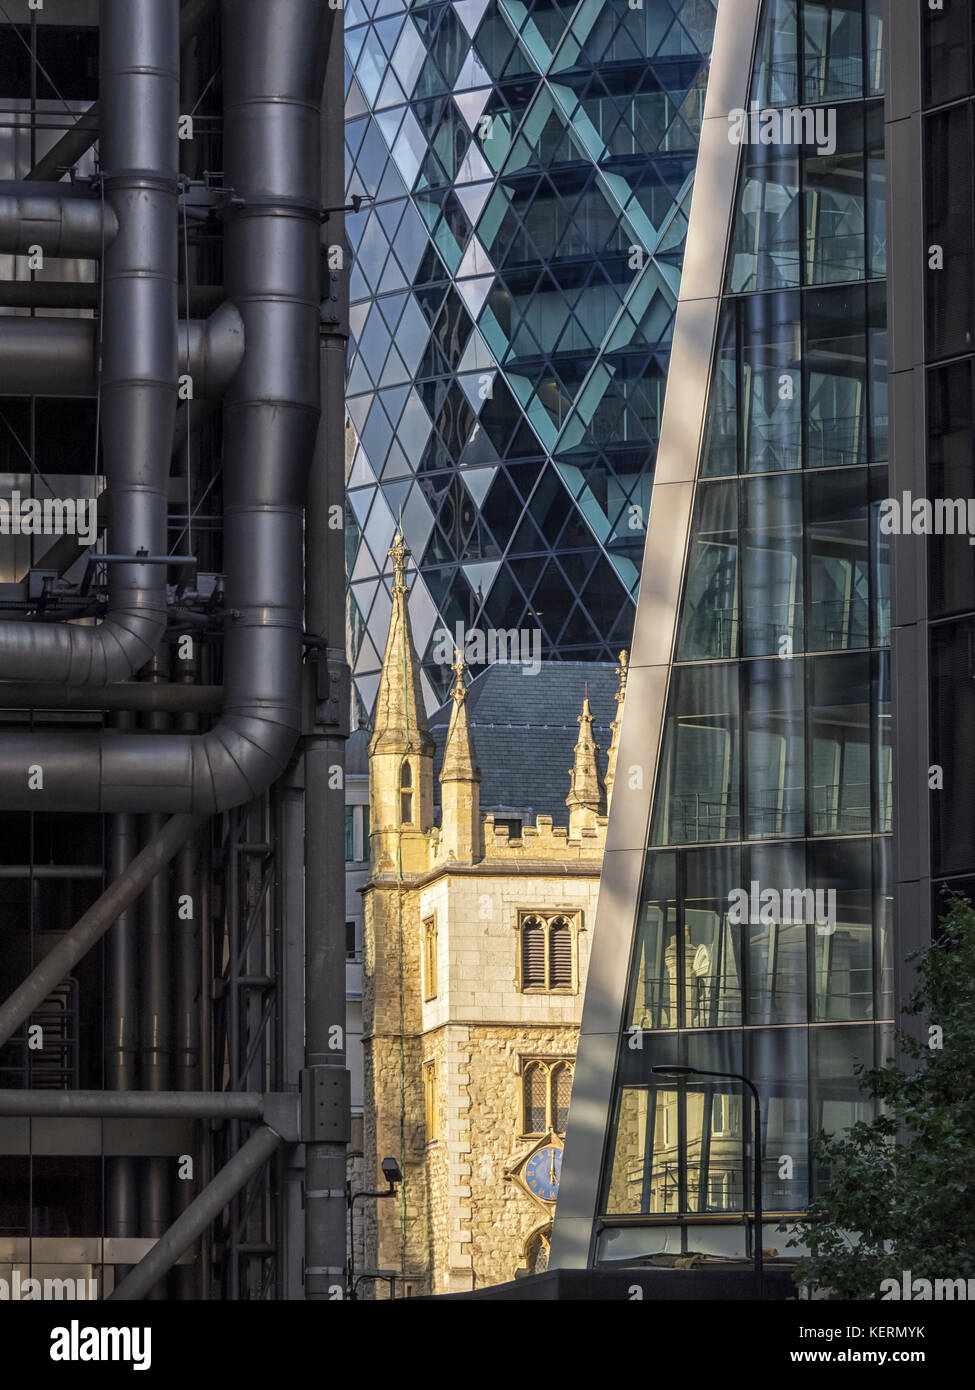 ST MARY AXE, LONDON:  St Andrew Undershaft Church suurounded by modern Office buildings - The Gerkin, Lloyds Building - Stock Image